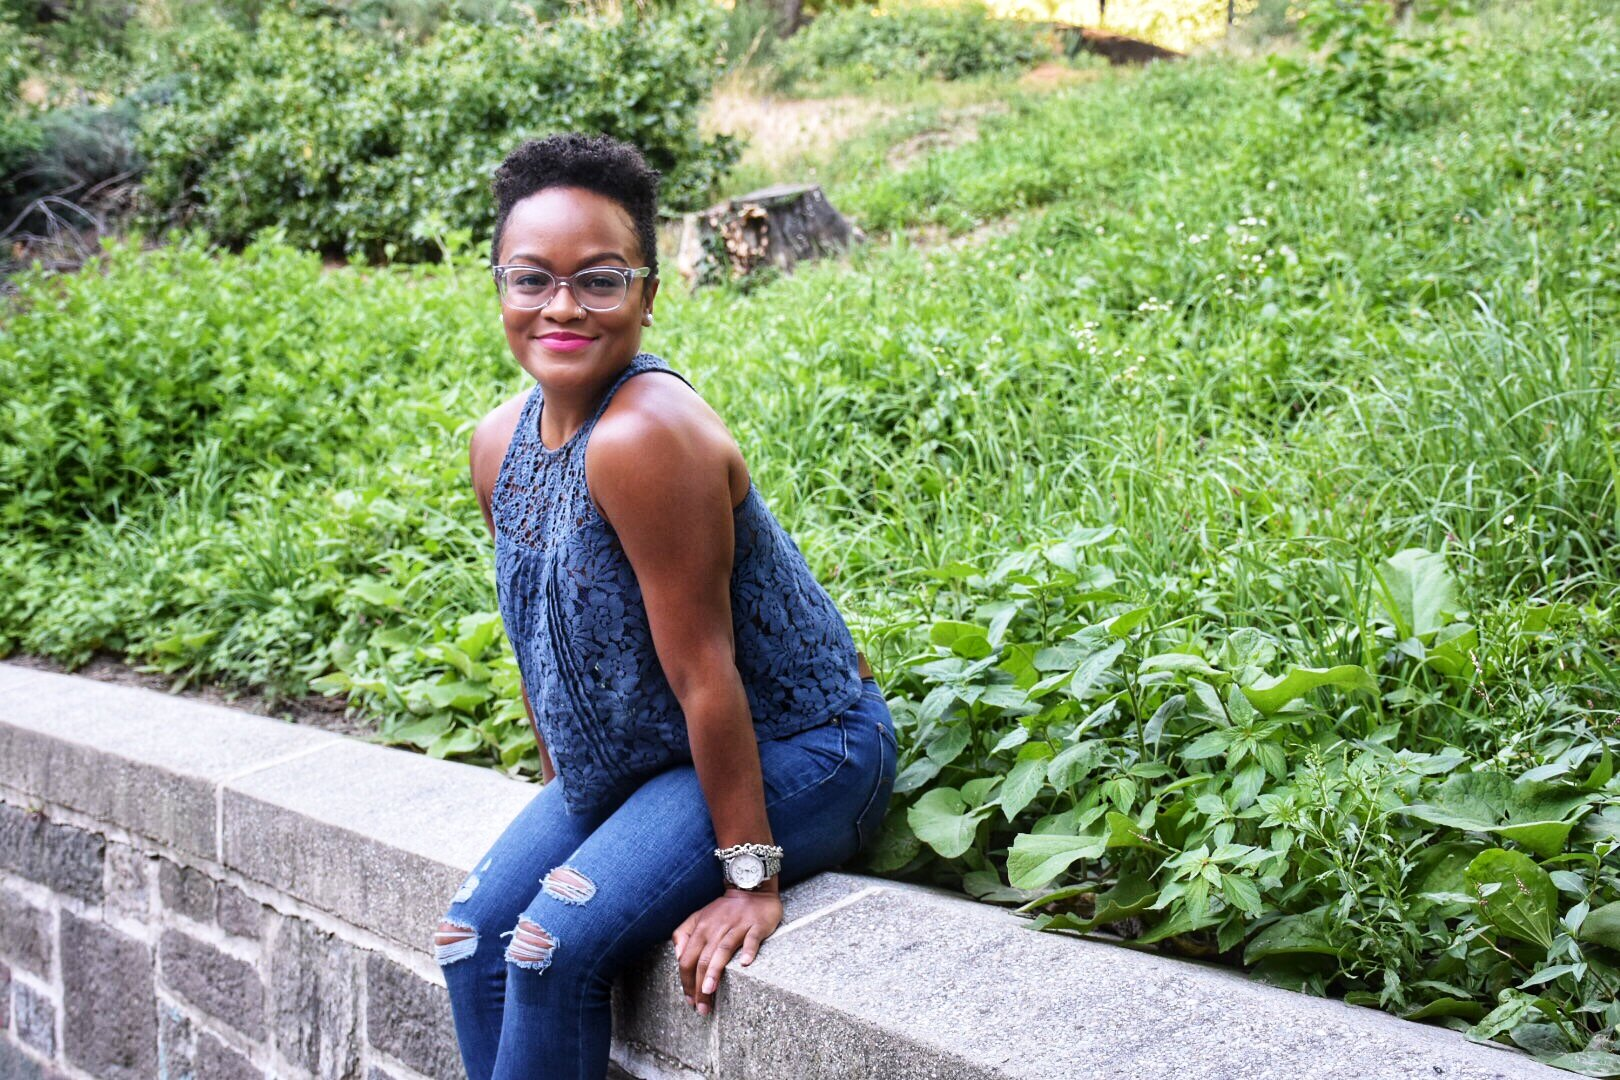 Hola, I'm josie! - I'm a palo santo-burning, Antony Santos-loving, Columbia University-trained licensed therapist, and walking with you on your journey to wholeness and wellness is the most important thing to me.Learn more about me here.